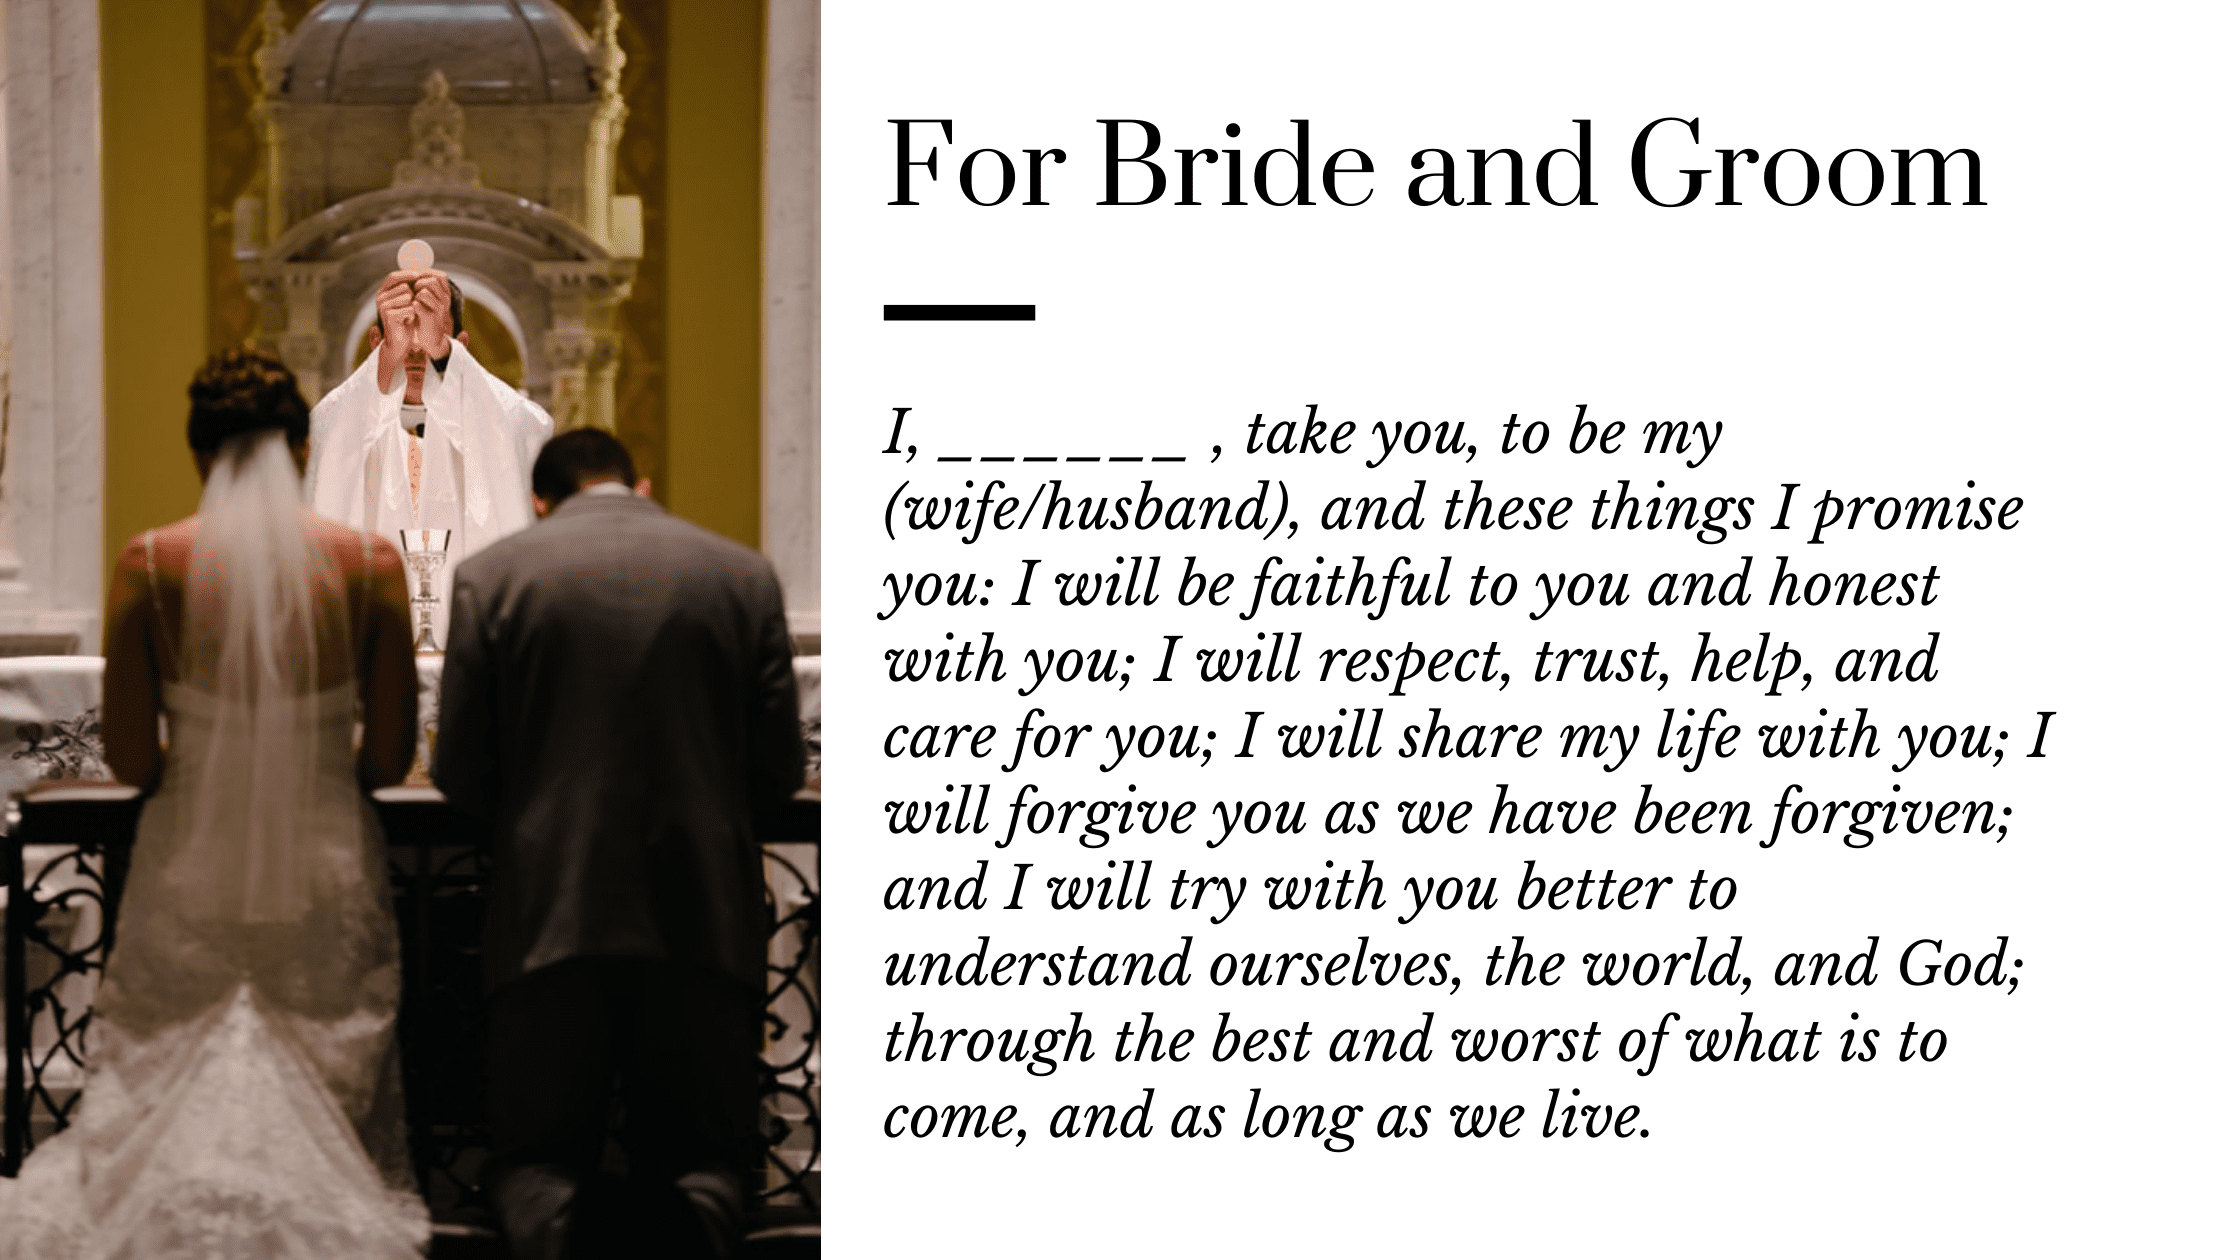 Christian wedding vows for both